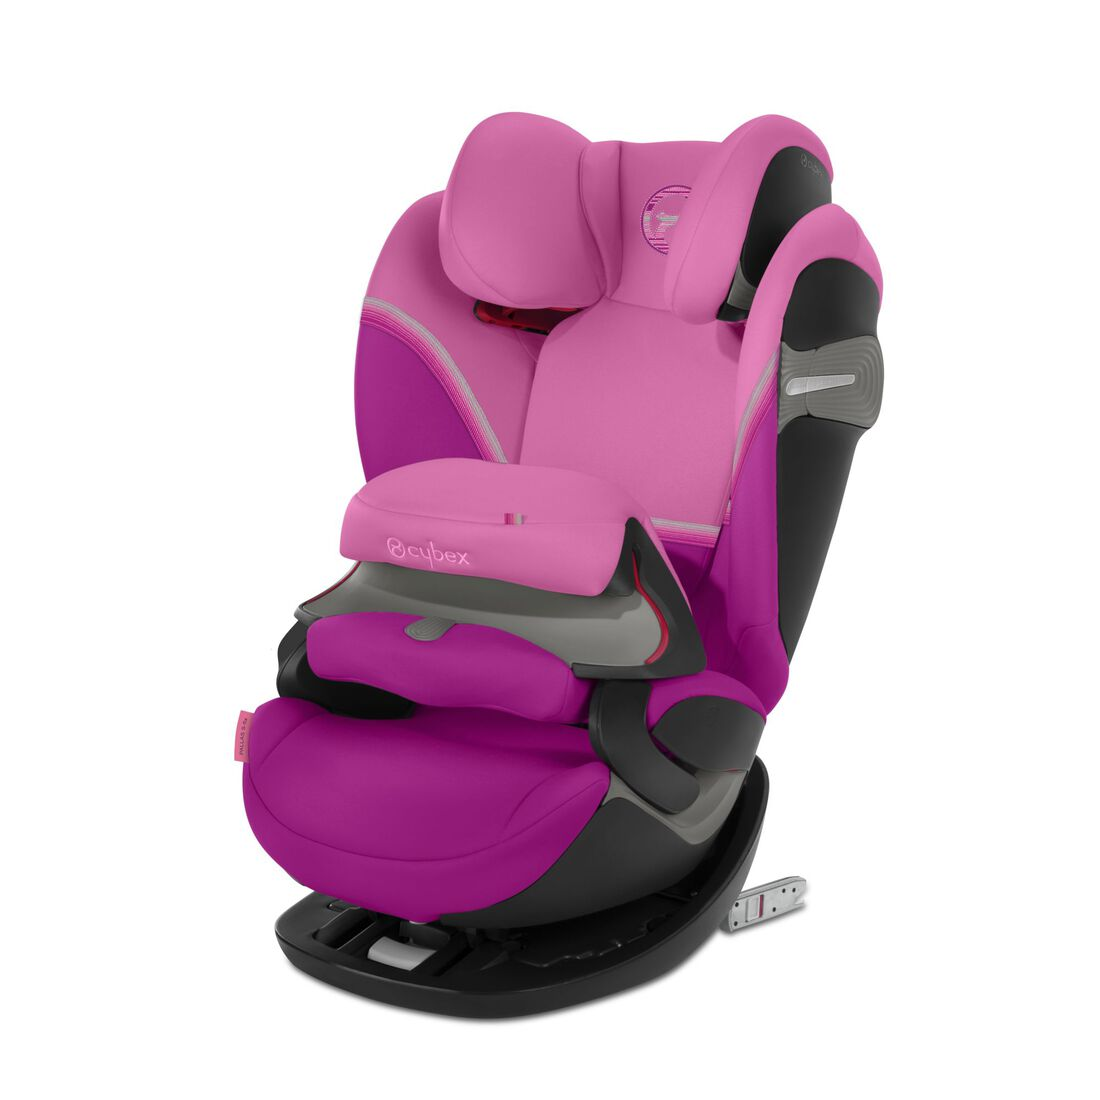 CYBEX Pallas S-fix - Magnolia Pink in Magnolia Pink large image number 1